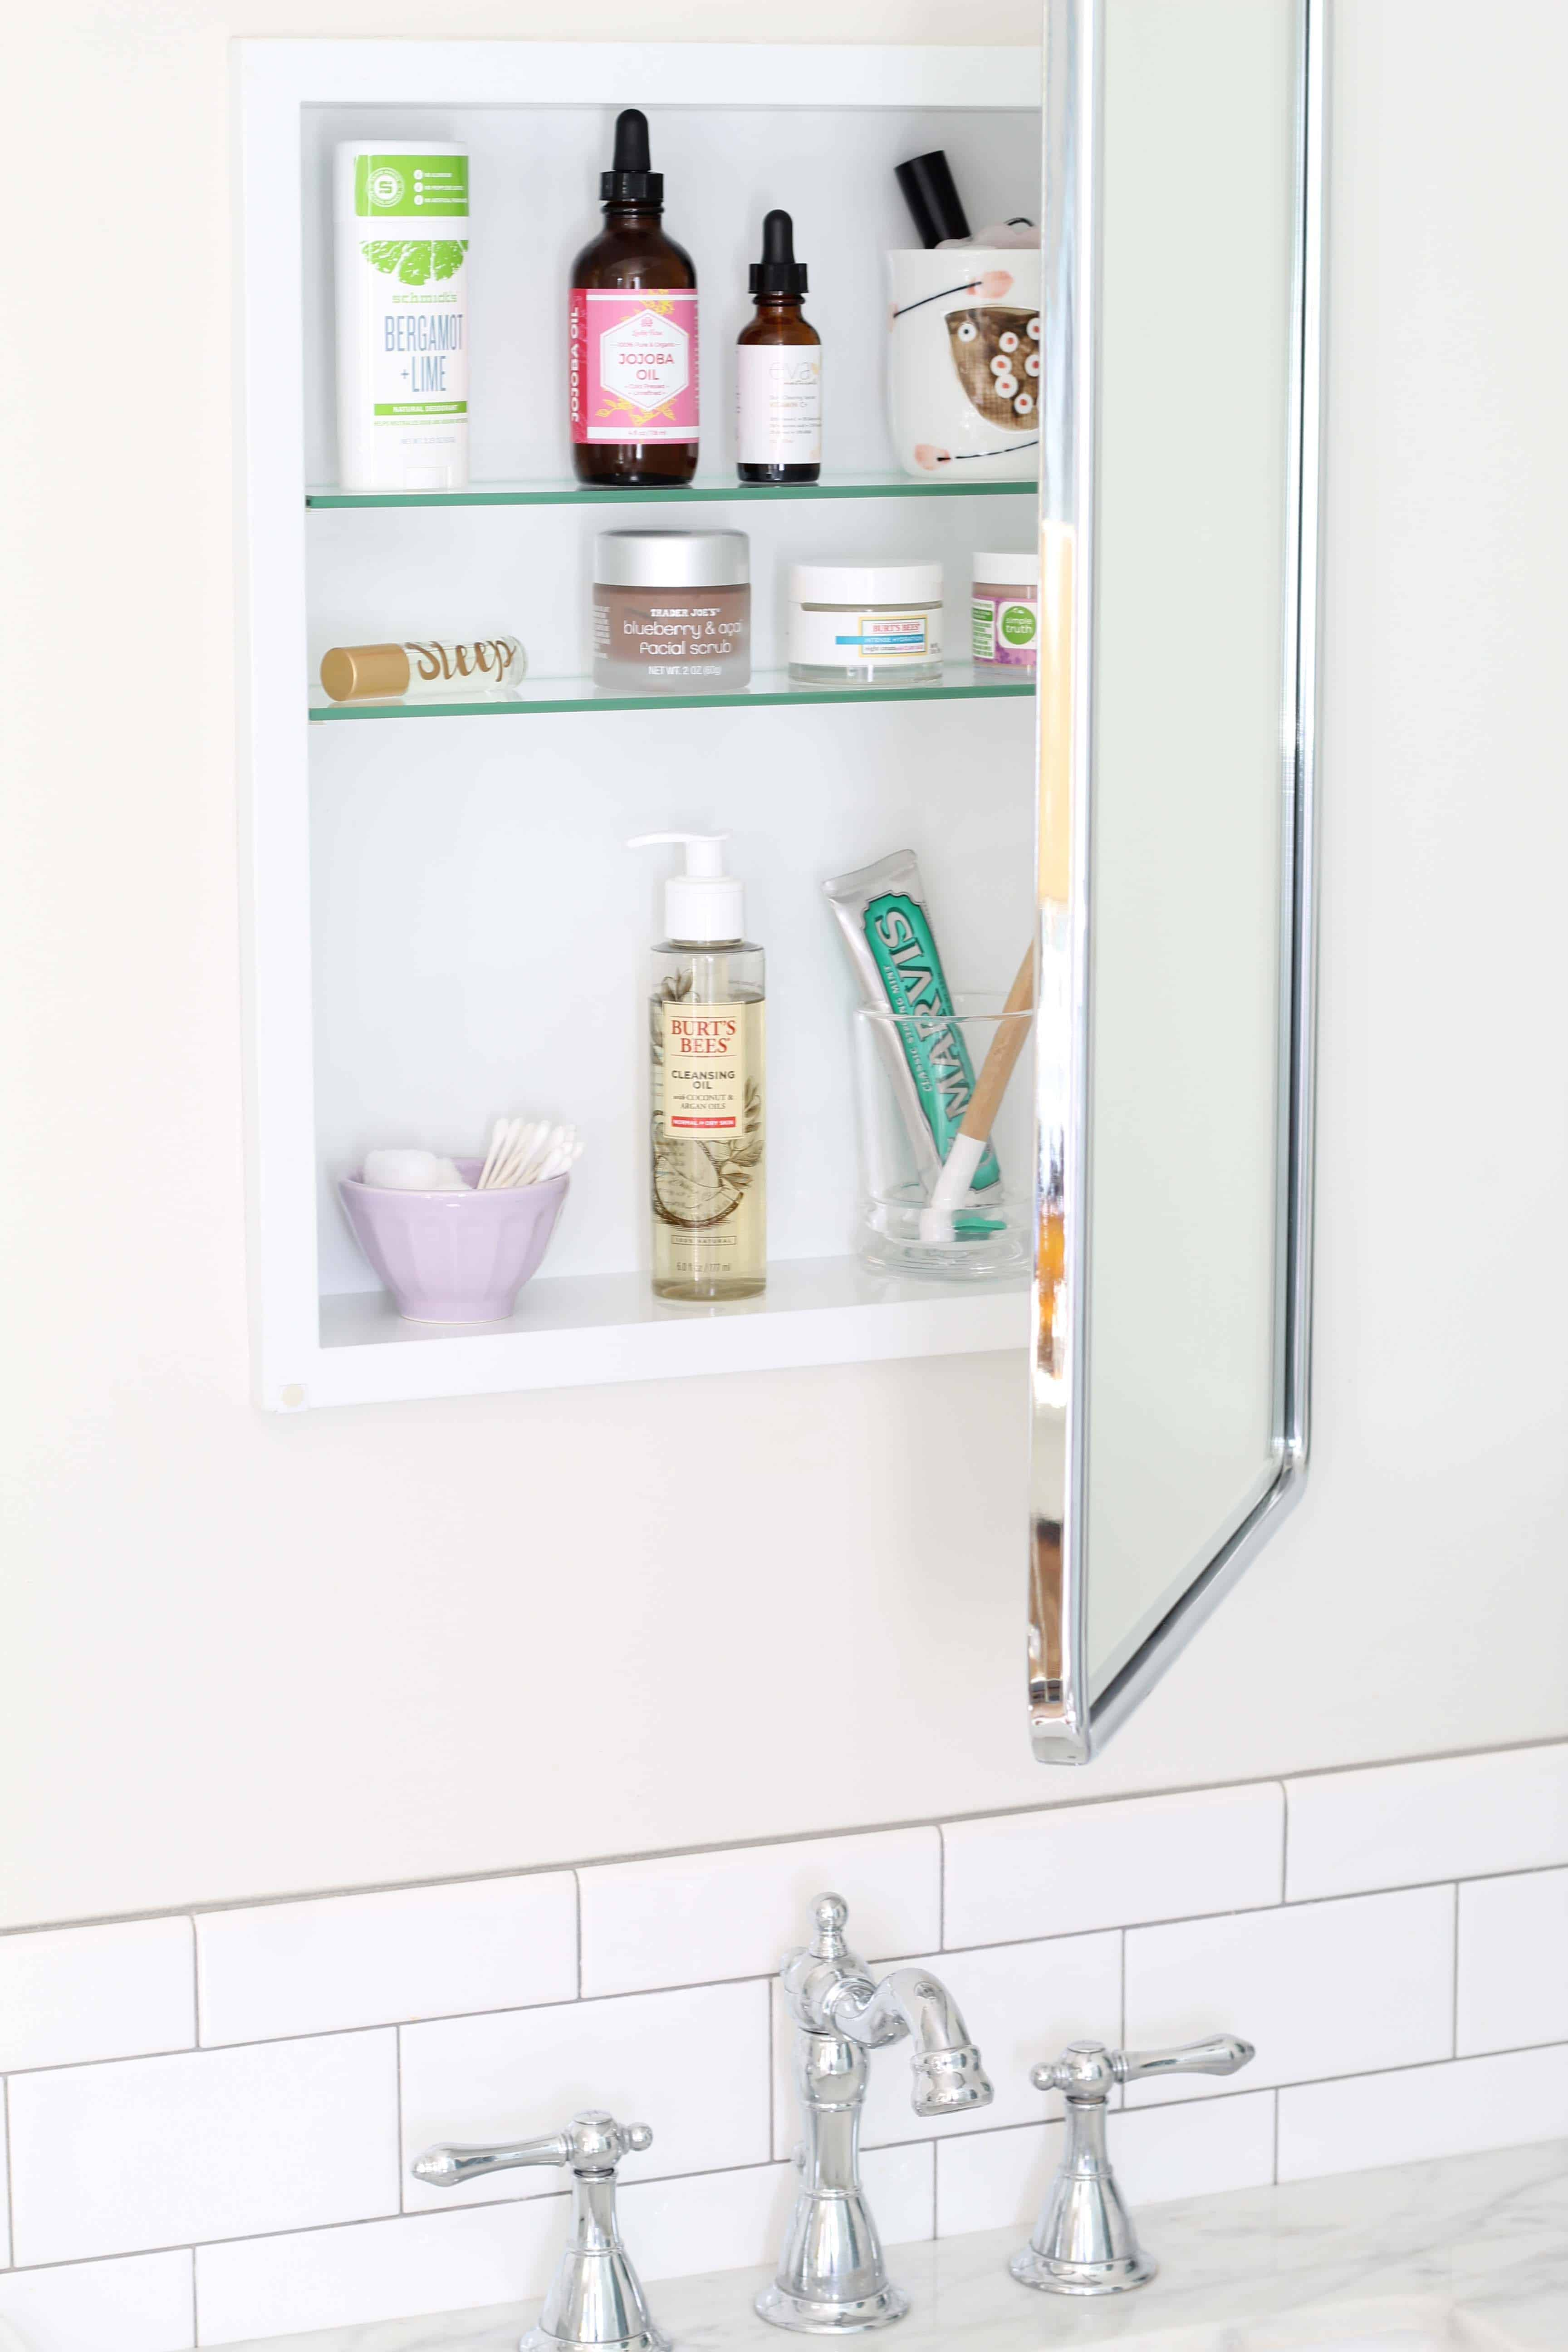 pottery barn recessed medicine cabinet with anthropologie latte bowl, jojoba oil, schmidts deodorant, wood dip dyed toothbrush